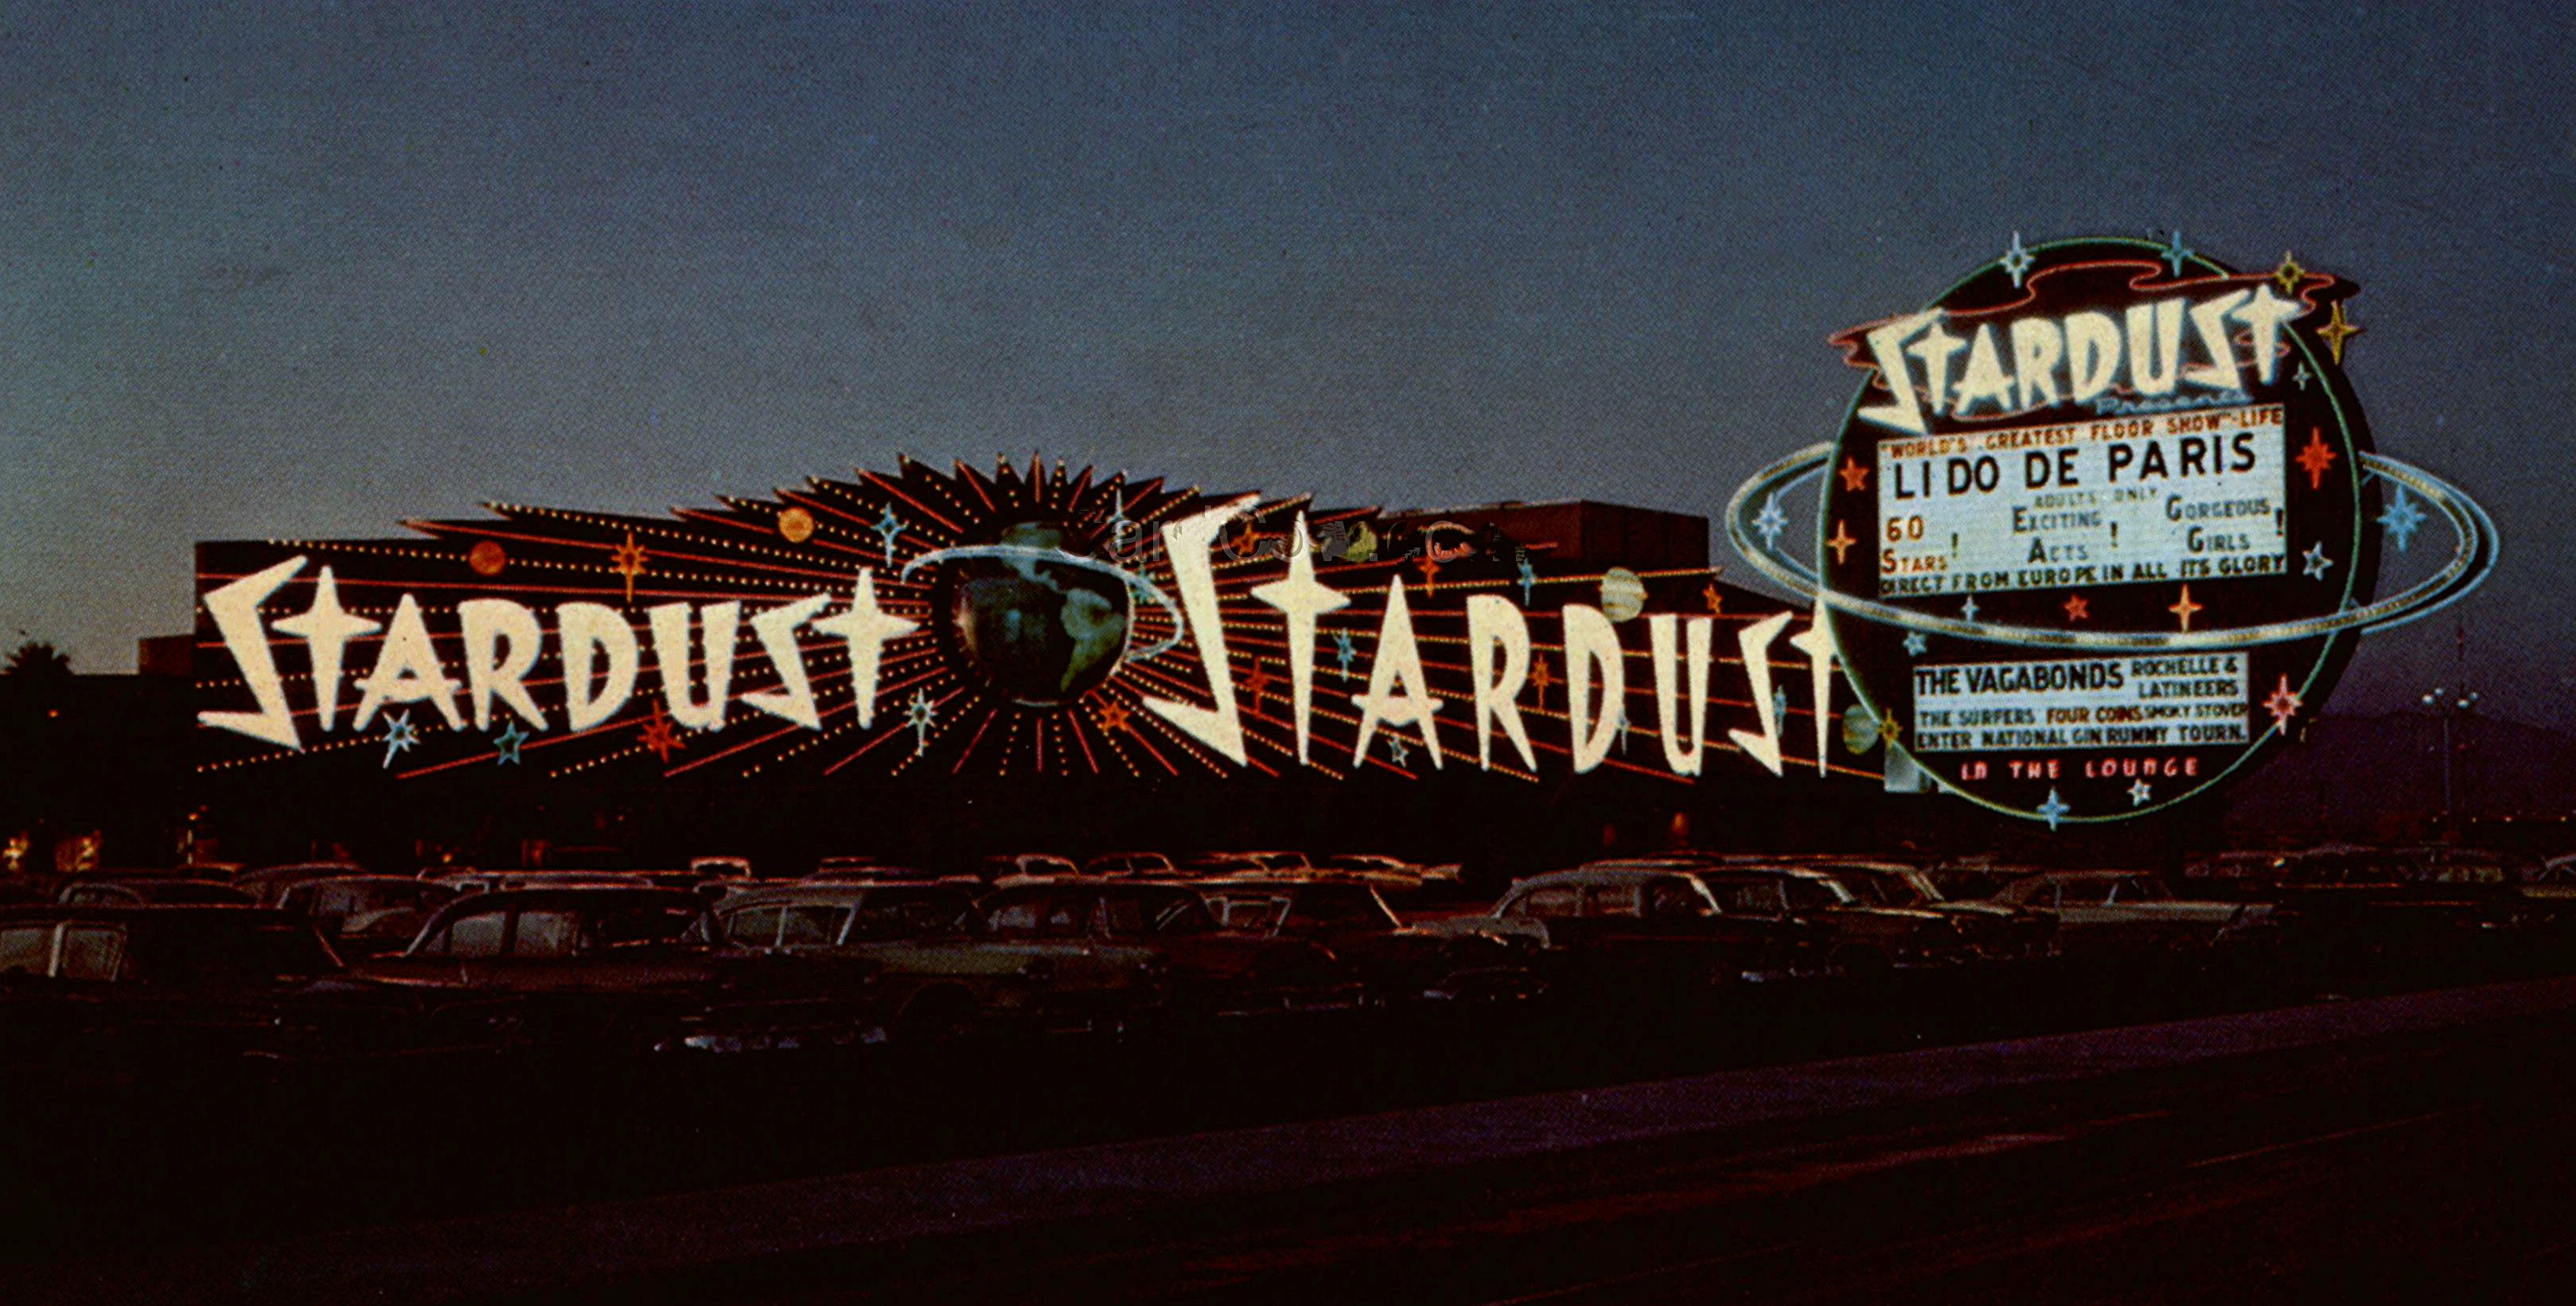 The original Stardust sign was very LONG and enjoyed by many!